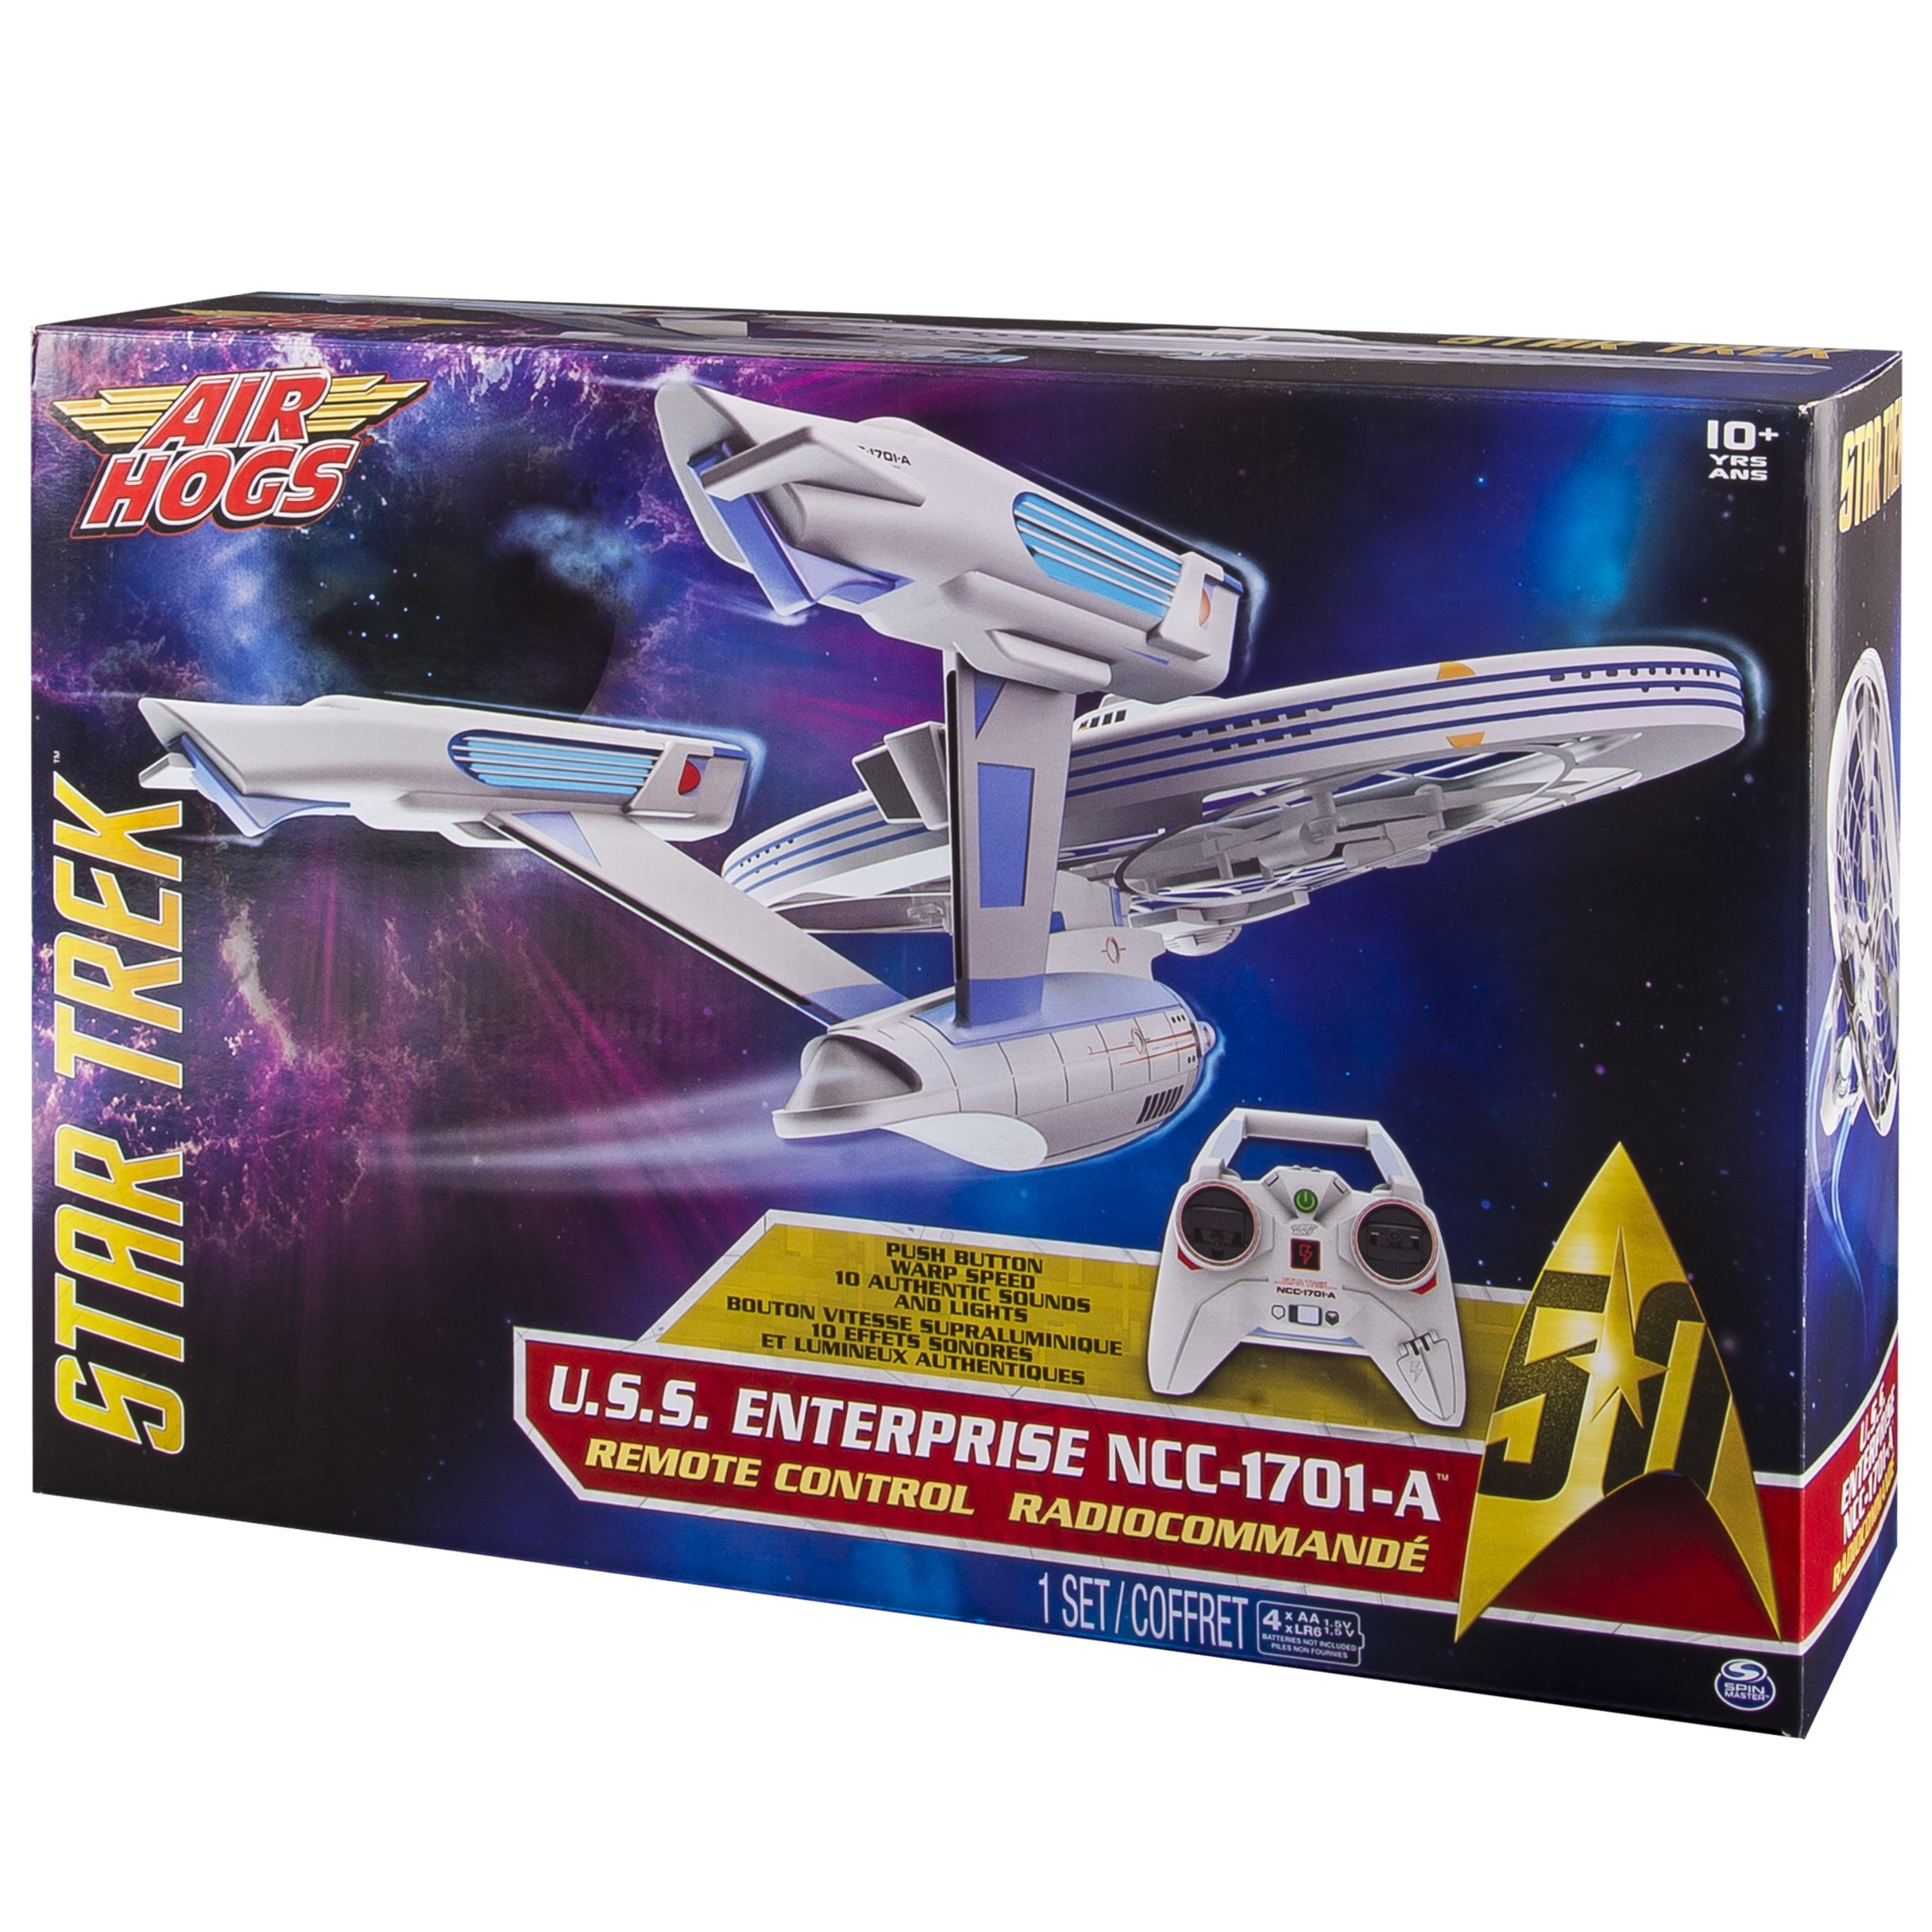 Air Hogs, Star Trek U.S.S Enterprise NCC-1701-A, Remote Control Drone with Lights and Sounds, 2.4 GHZ, 4 Channel by Air Hogs (Image #6)